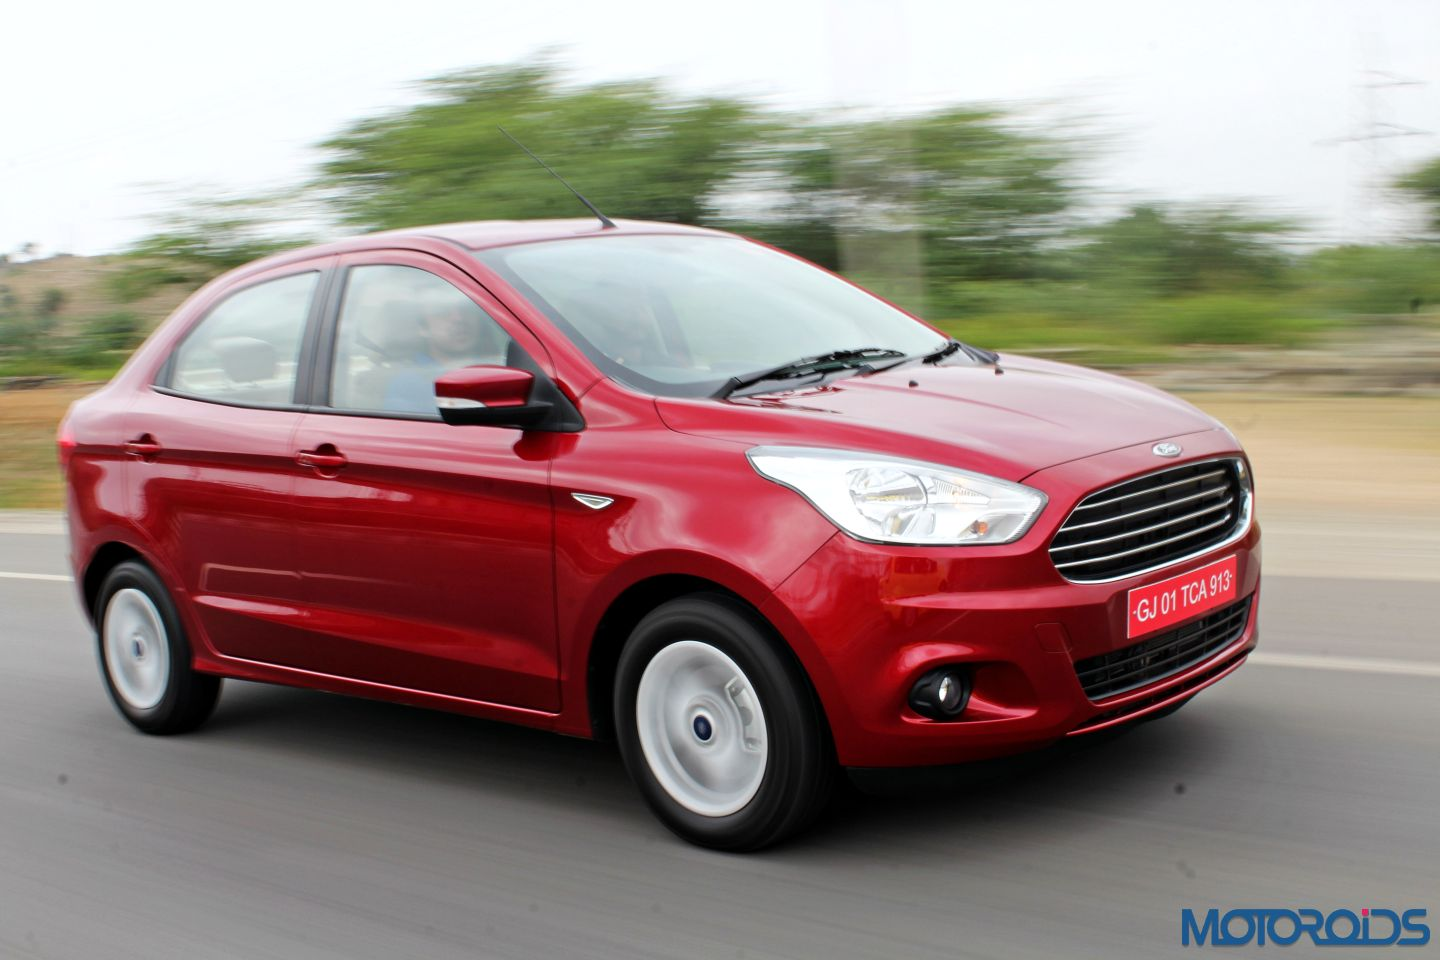 Ford Figo Aspire Launched: All The Details